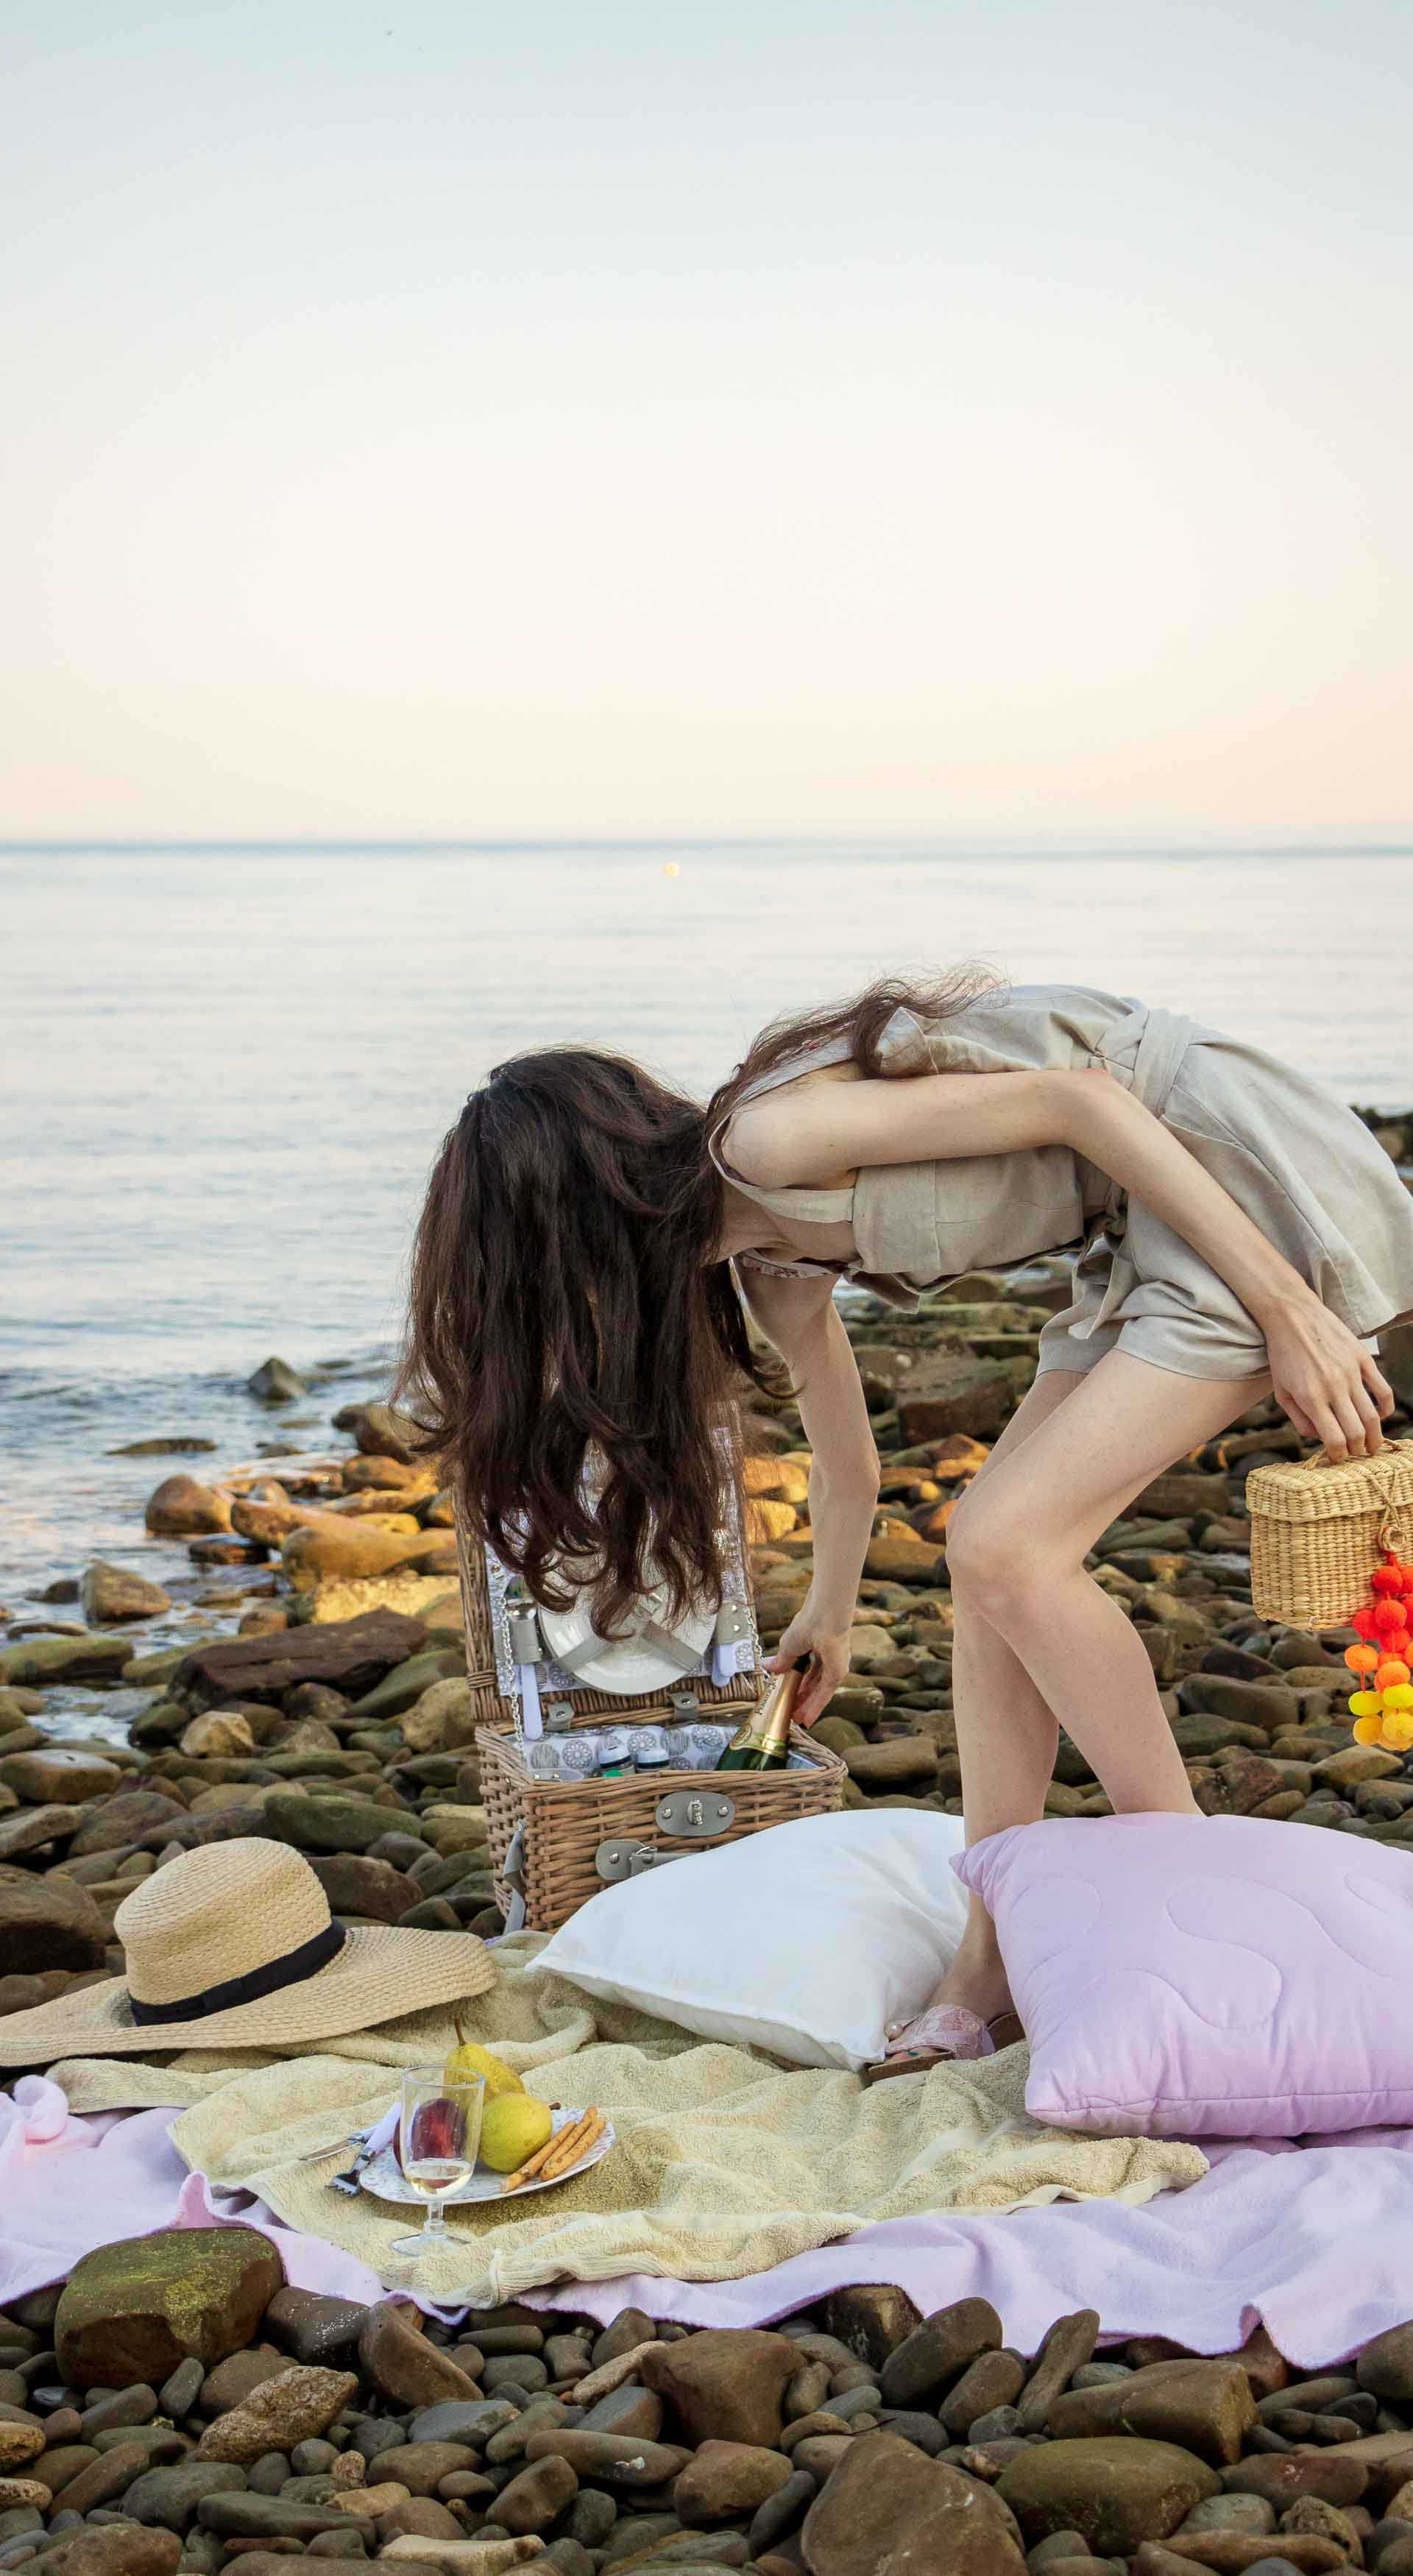 Slovenian Fashion Blogger Veronika Lipar of Brunette from Wall dressed in beige linen crop top, paper bag linen shorts, luxe pool slides, large straw hat, Nannacay basket bag while preparing beach picnic